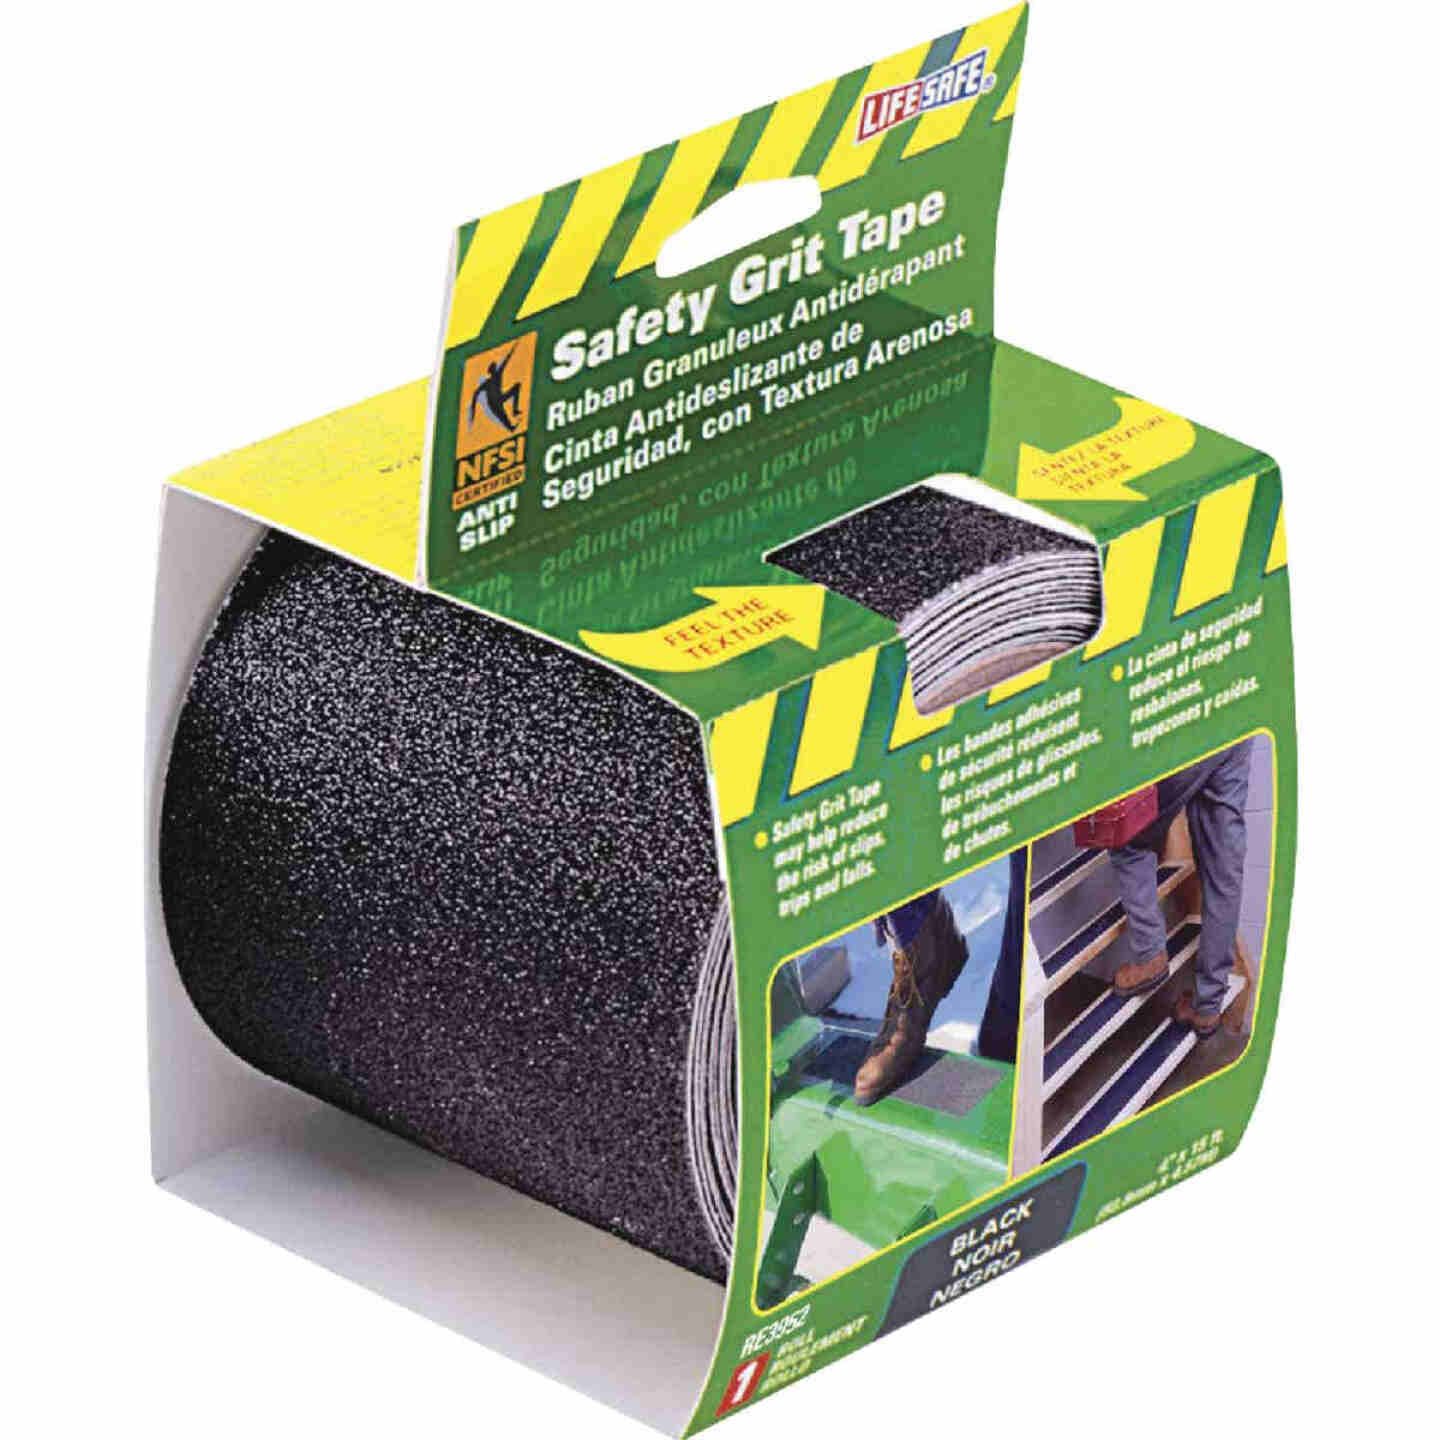 LIFESAFE 4 In.x 15 Ft. Black Anti-Slip Walk Safety Tape Image 1